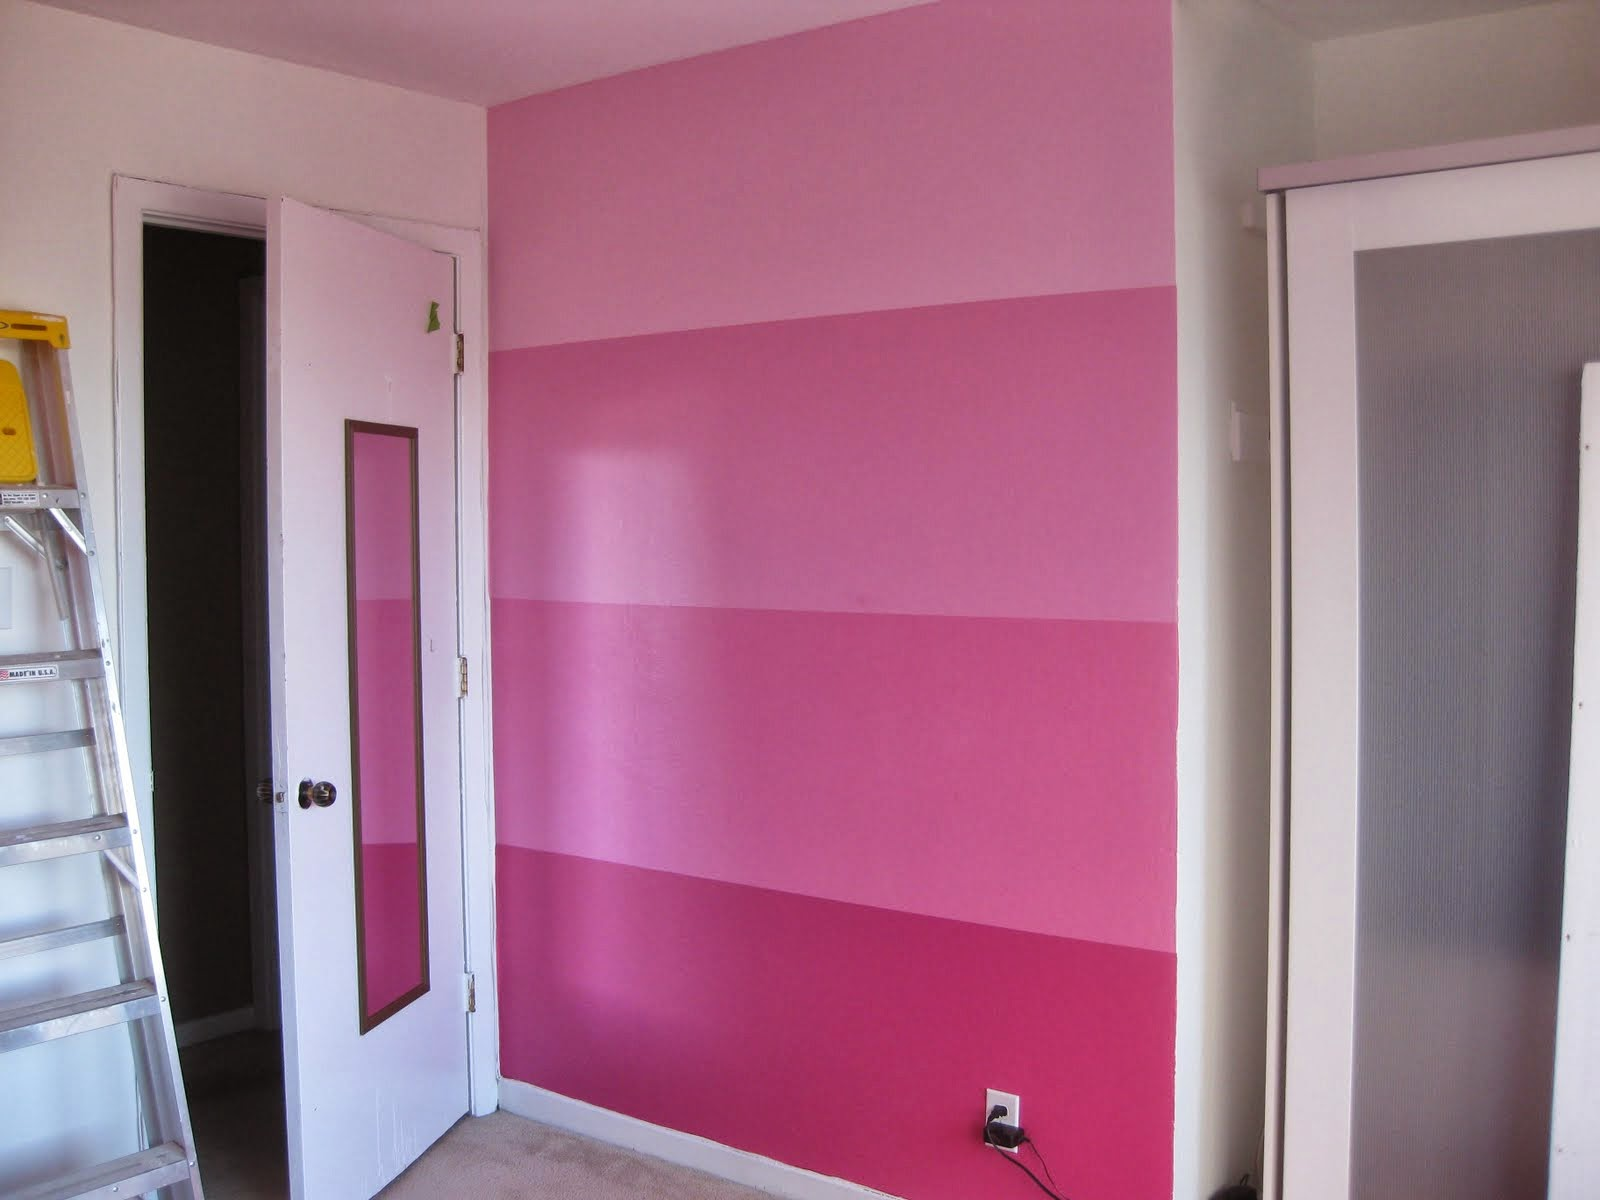 Different Shades of Pink Paint